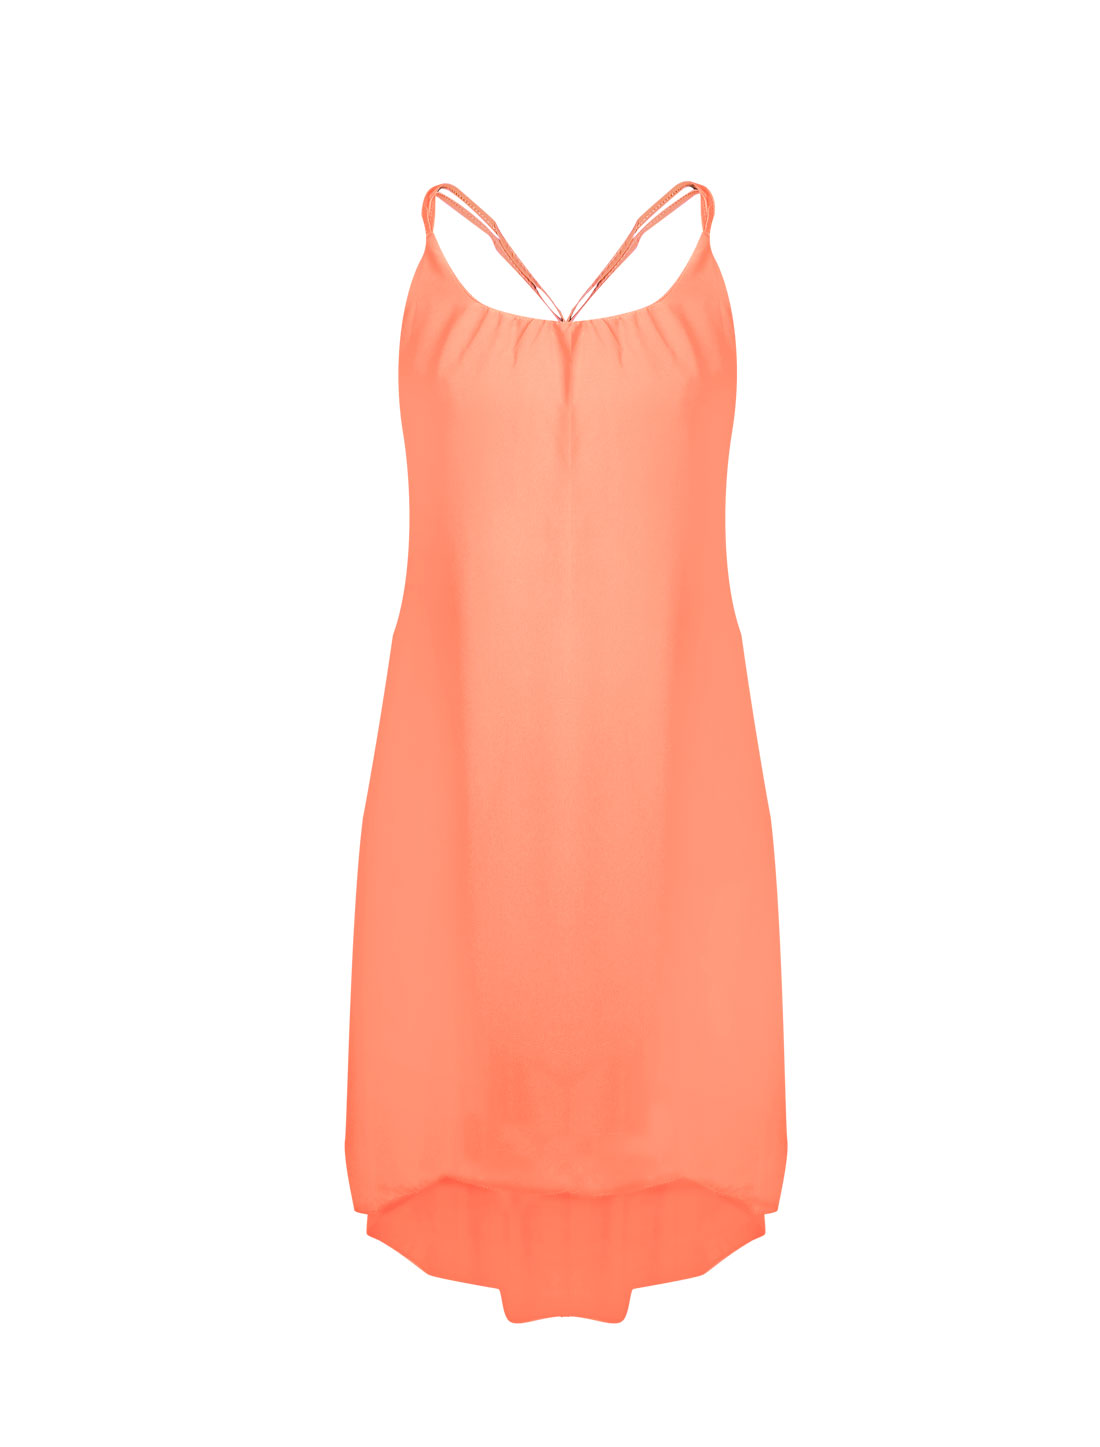 Women Sleeveless Strappy Cami Back Full Lined Pullover Chiffon Dress Salmon S